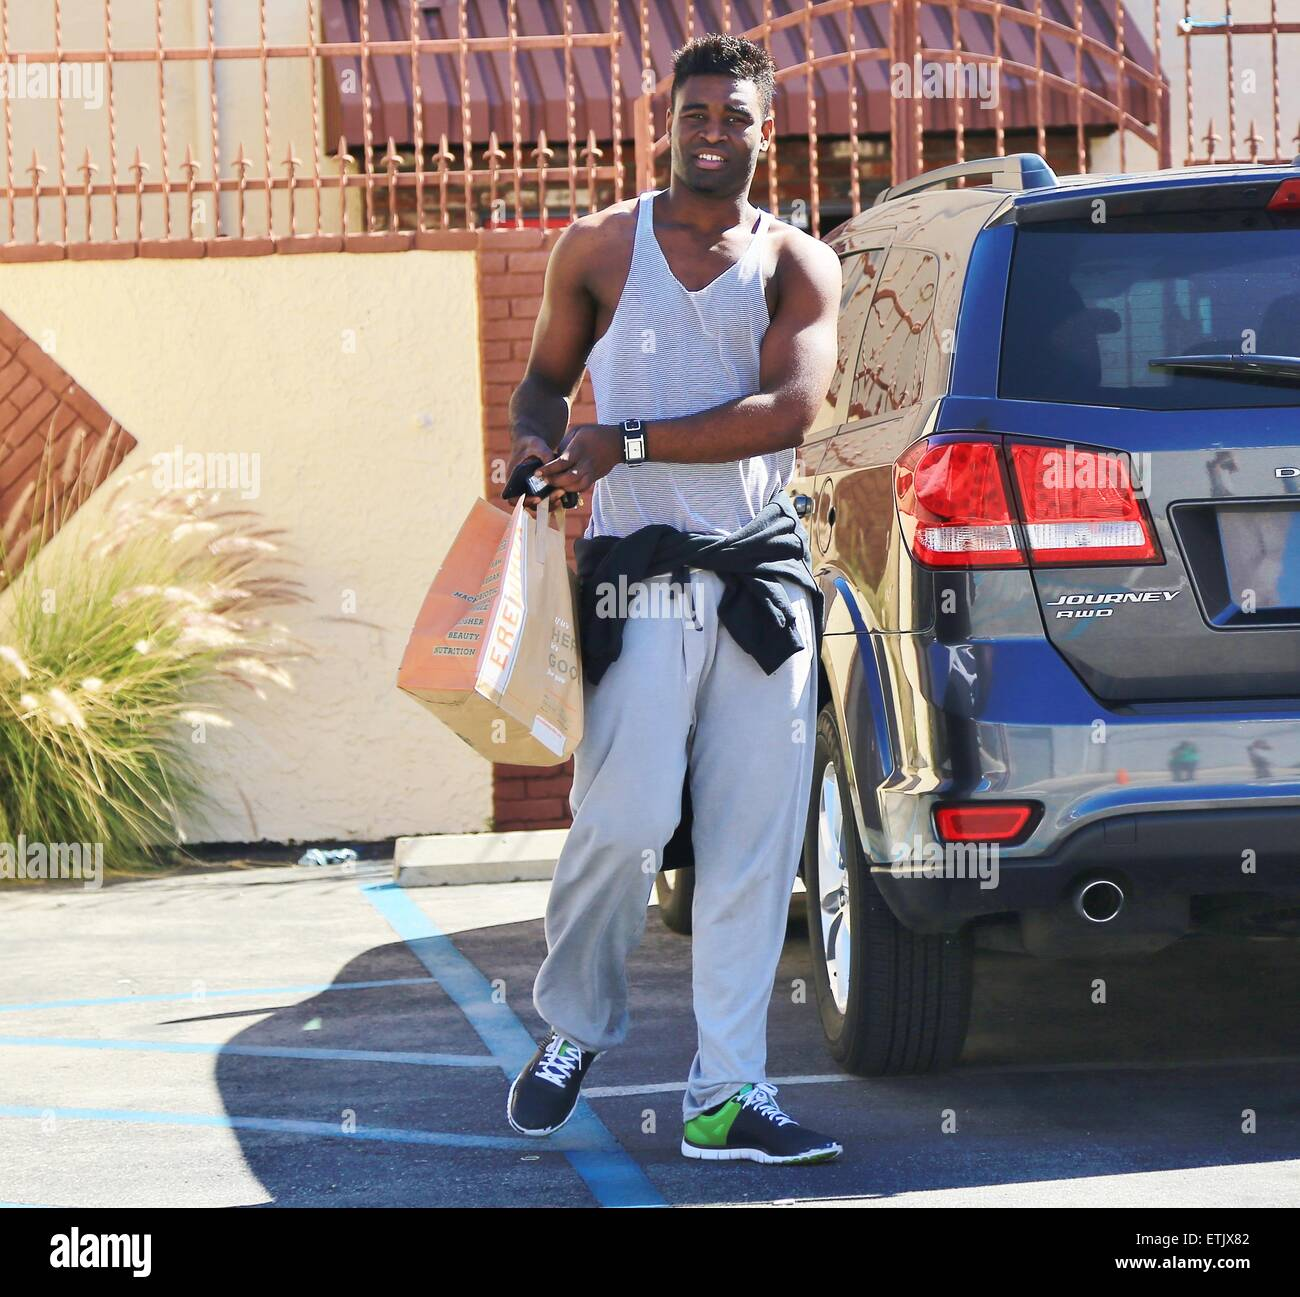 Keo Motsepe Arrives For Another Day Of Practice At The Dancing With Stock Photo Alamy